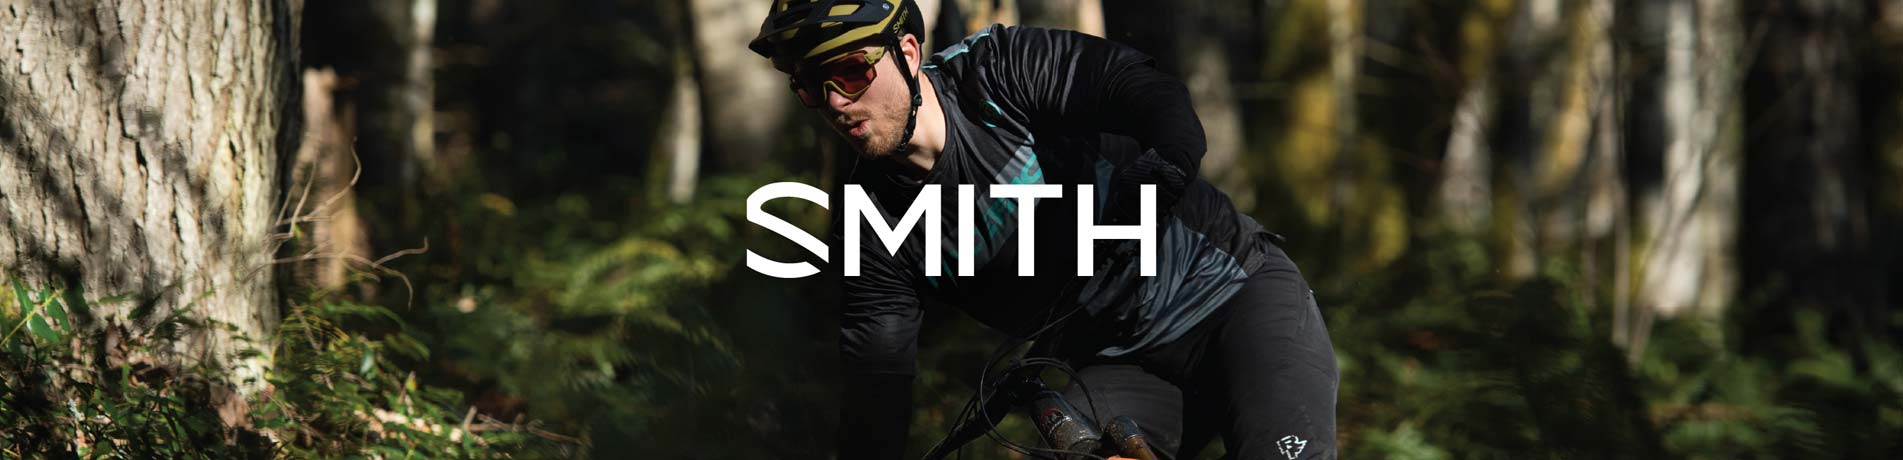 Smith Outsider Prescription Glasses